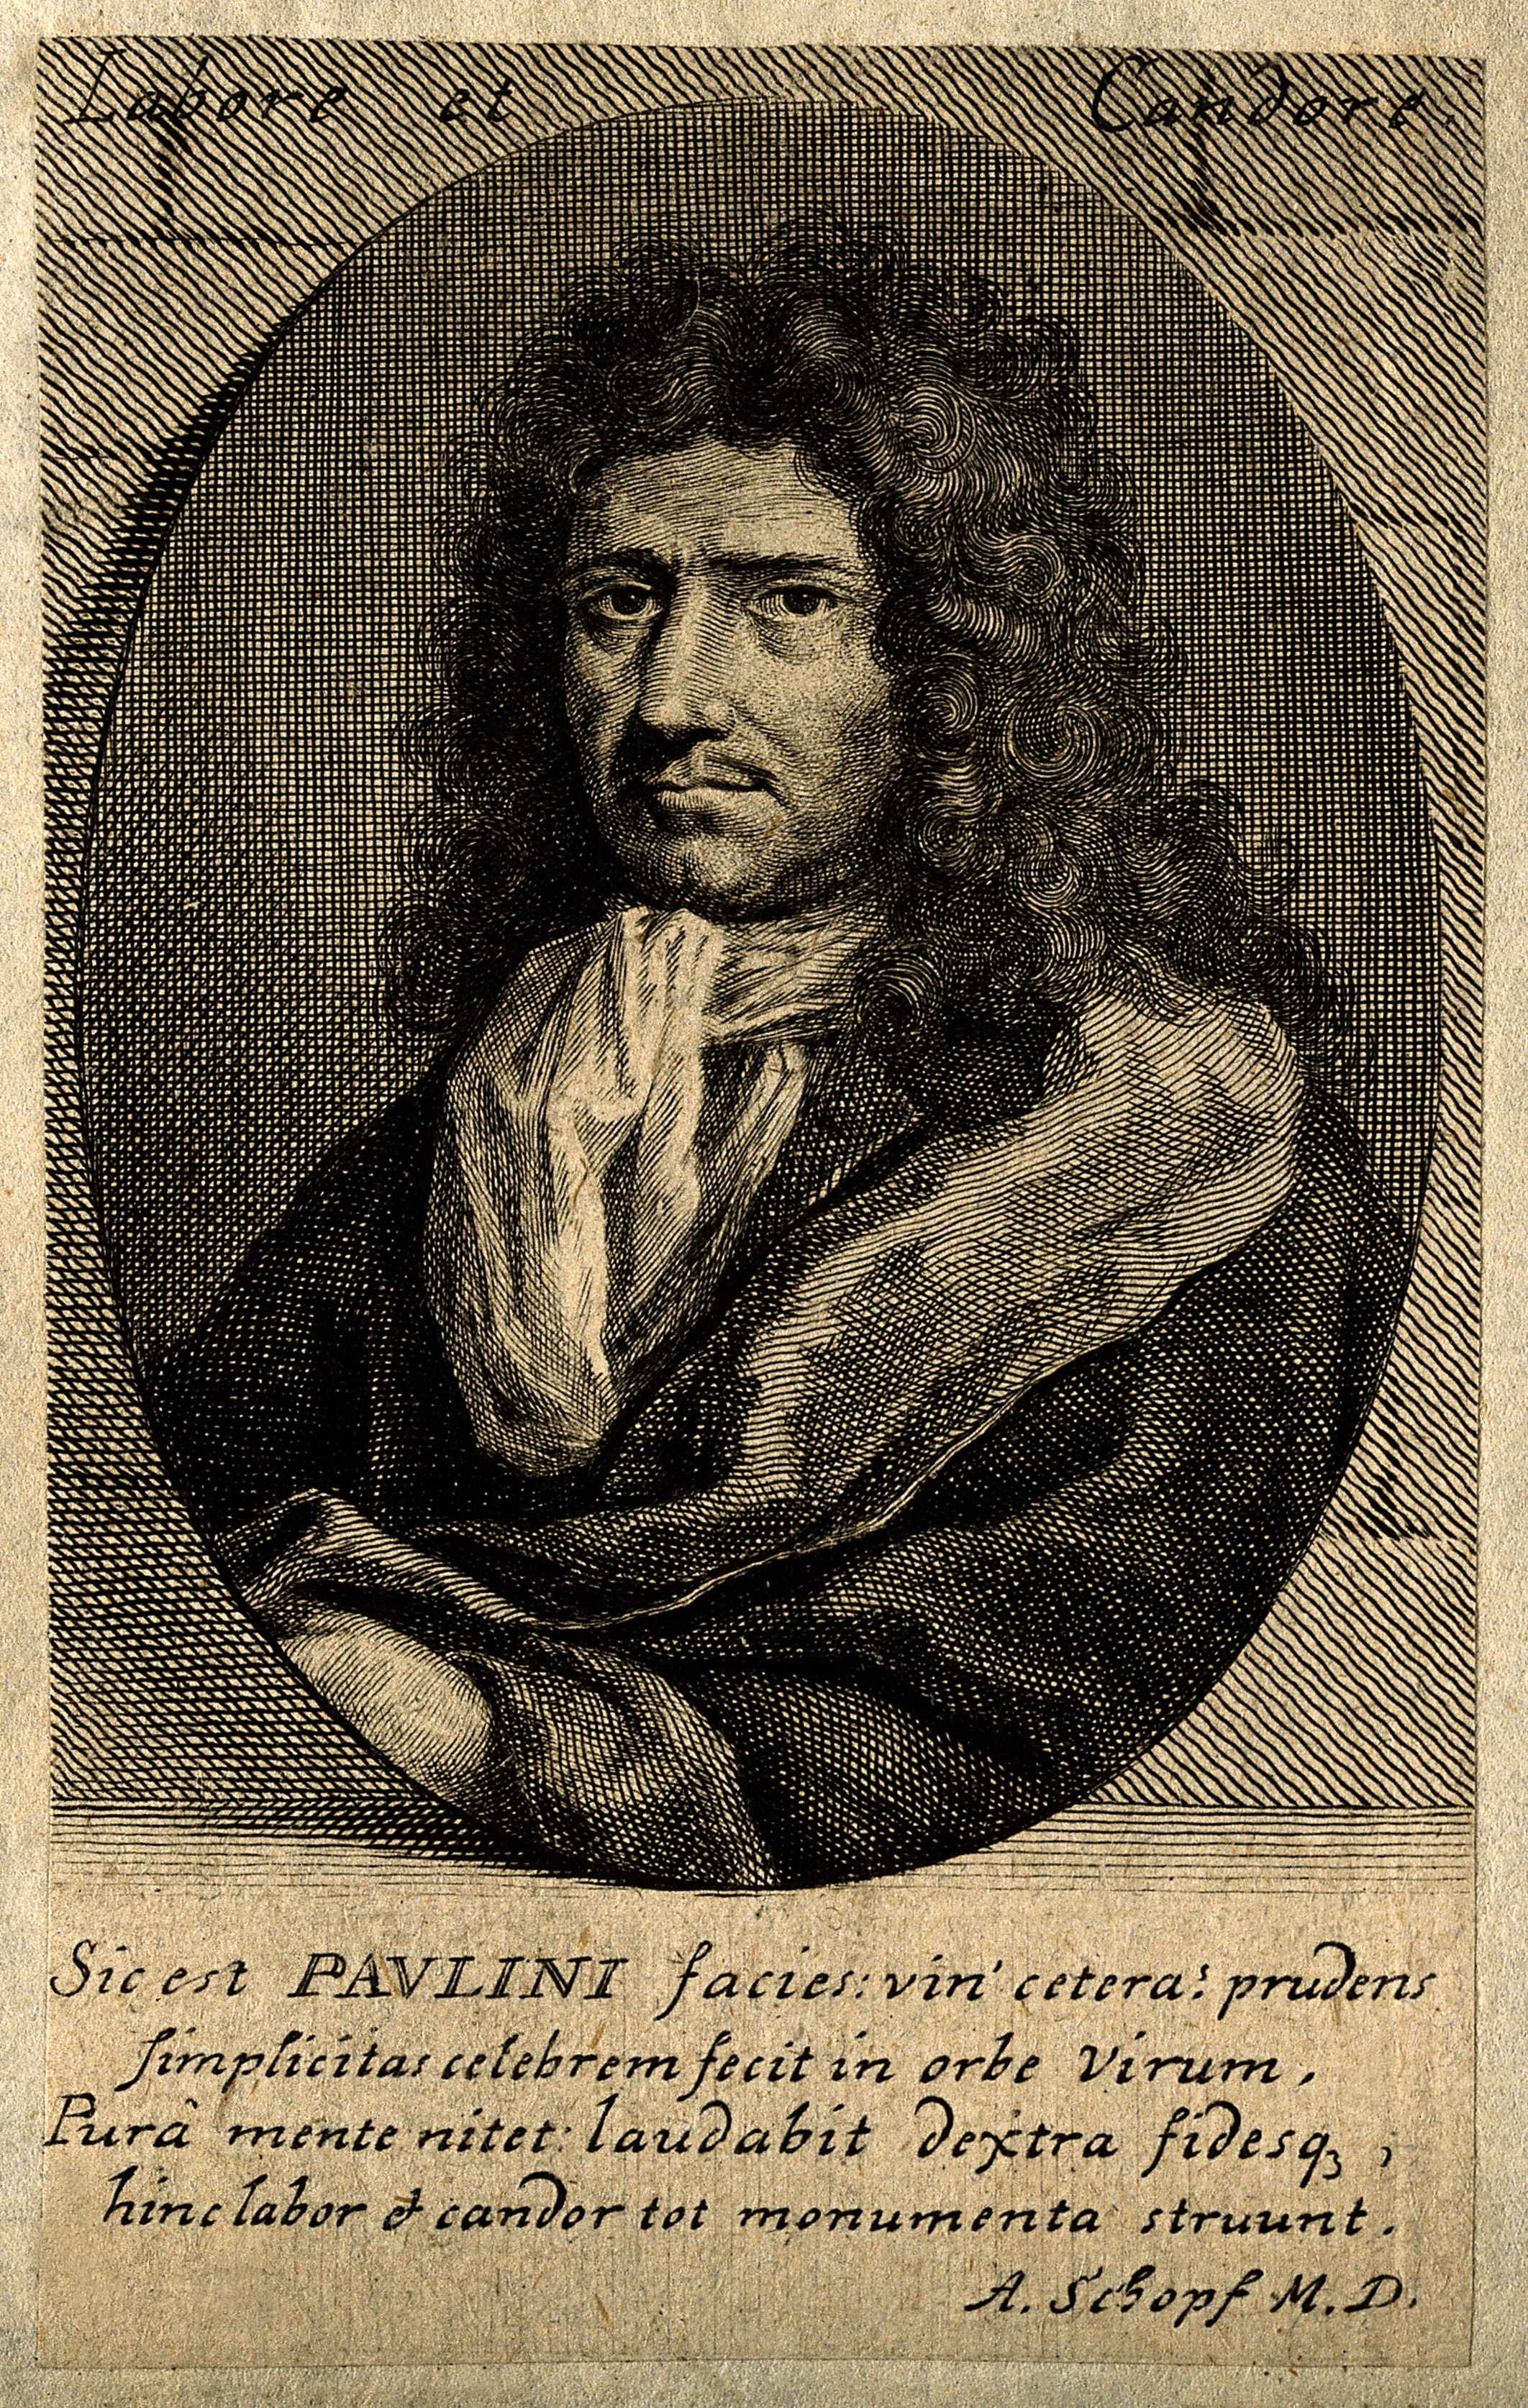 Portrait. Credit: Wellcome Collection